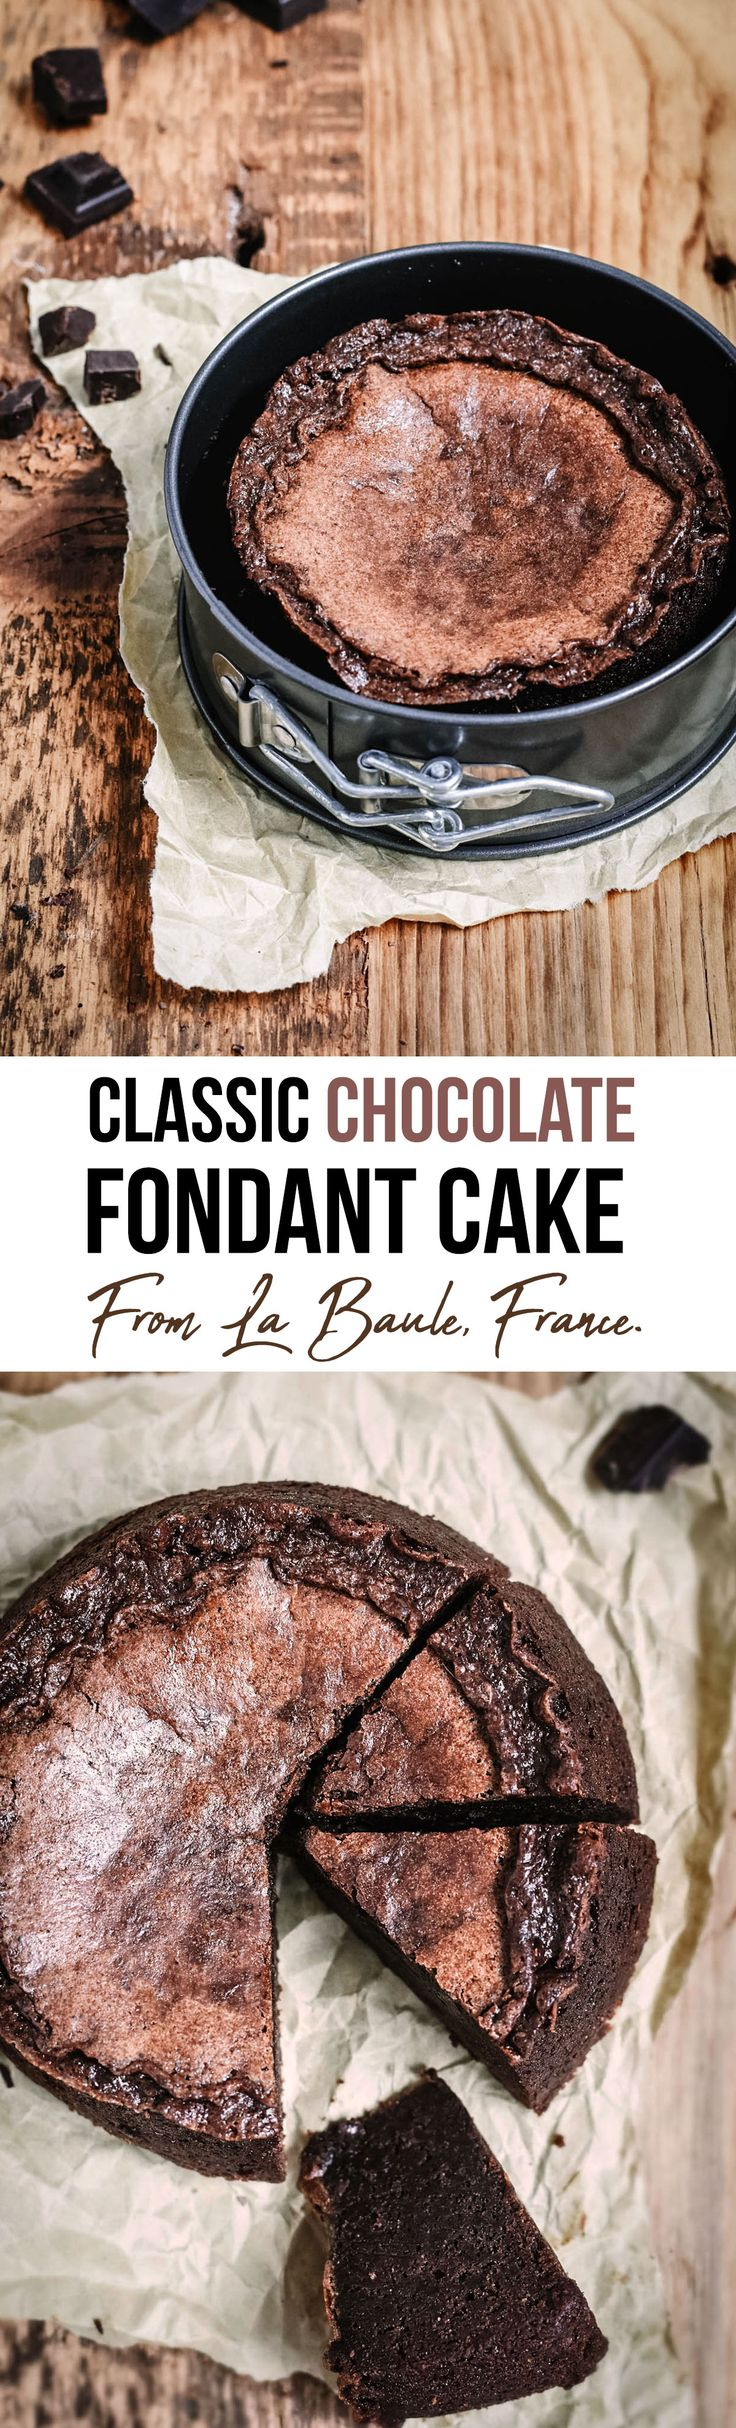 Chocolate Fondant Cake from La Baule, France - A decadent chocolate cake with delicate notes of caramel. Its recipe has been kept secret from its maker for years... you have to try it!